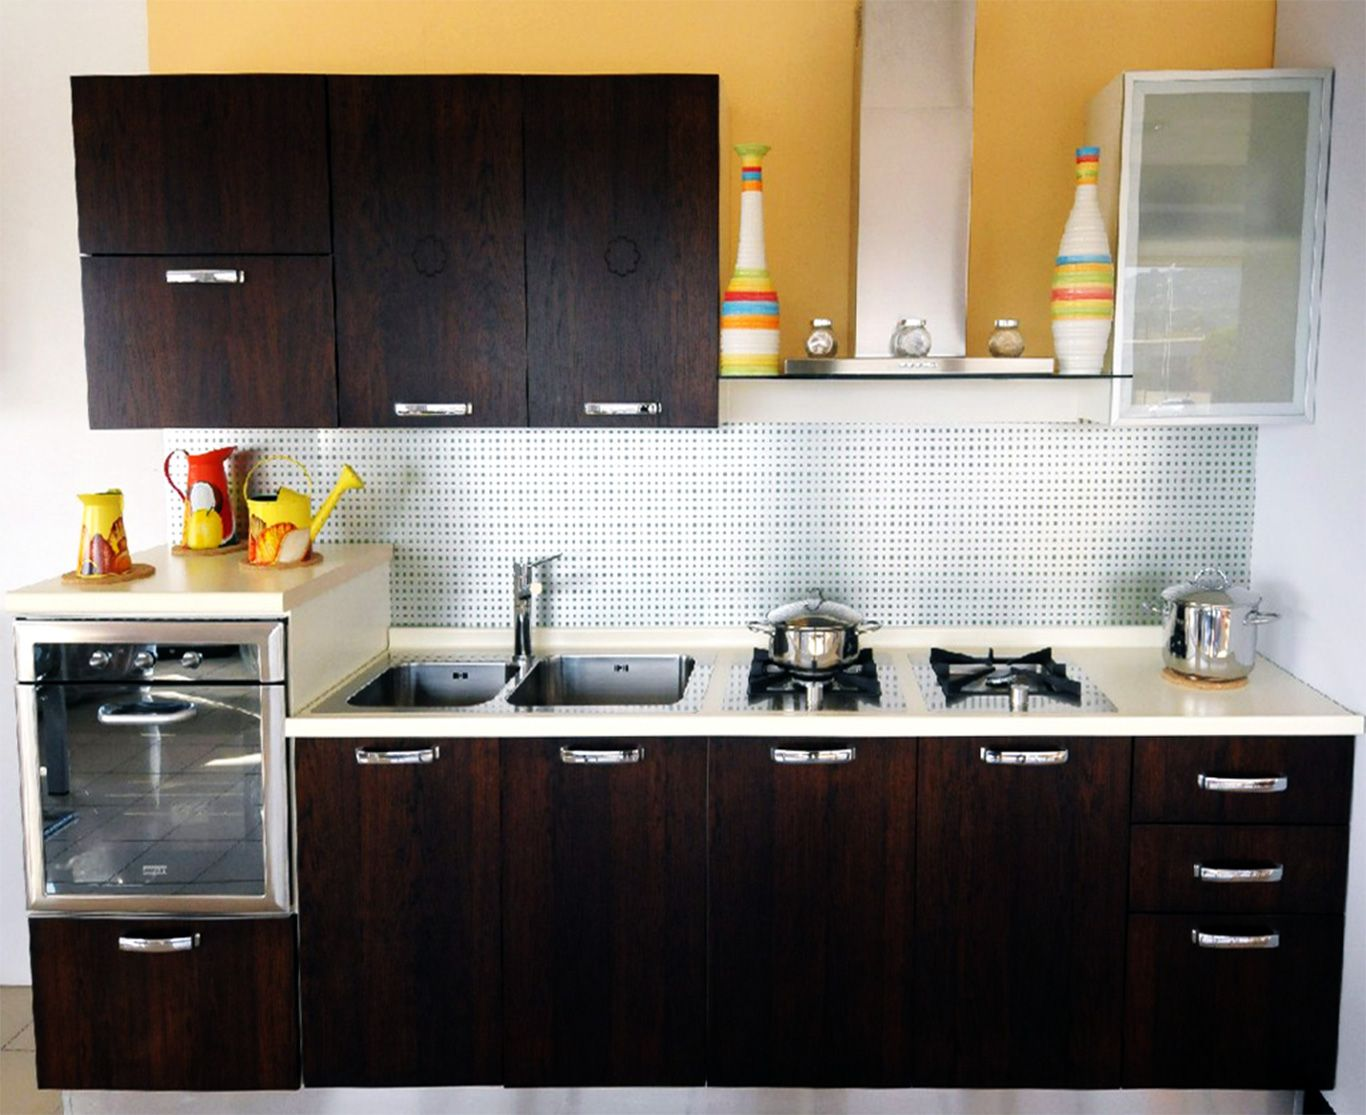 Pune kitchens is the modular kitchen shutters supplier for Simple small kitchen design pictures